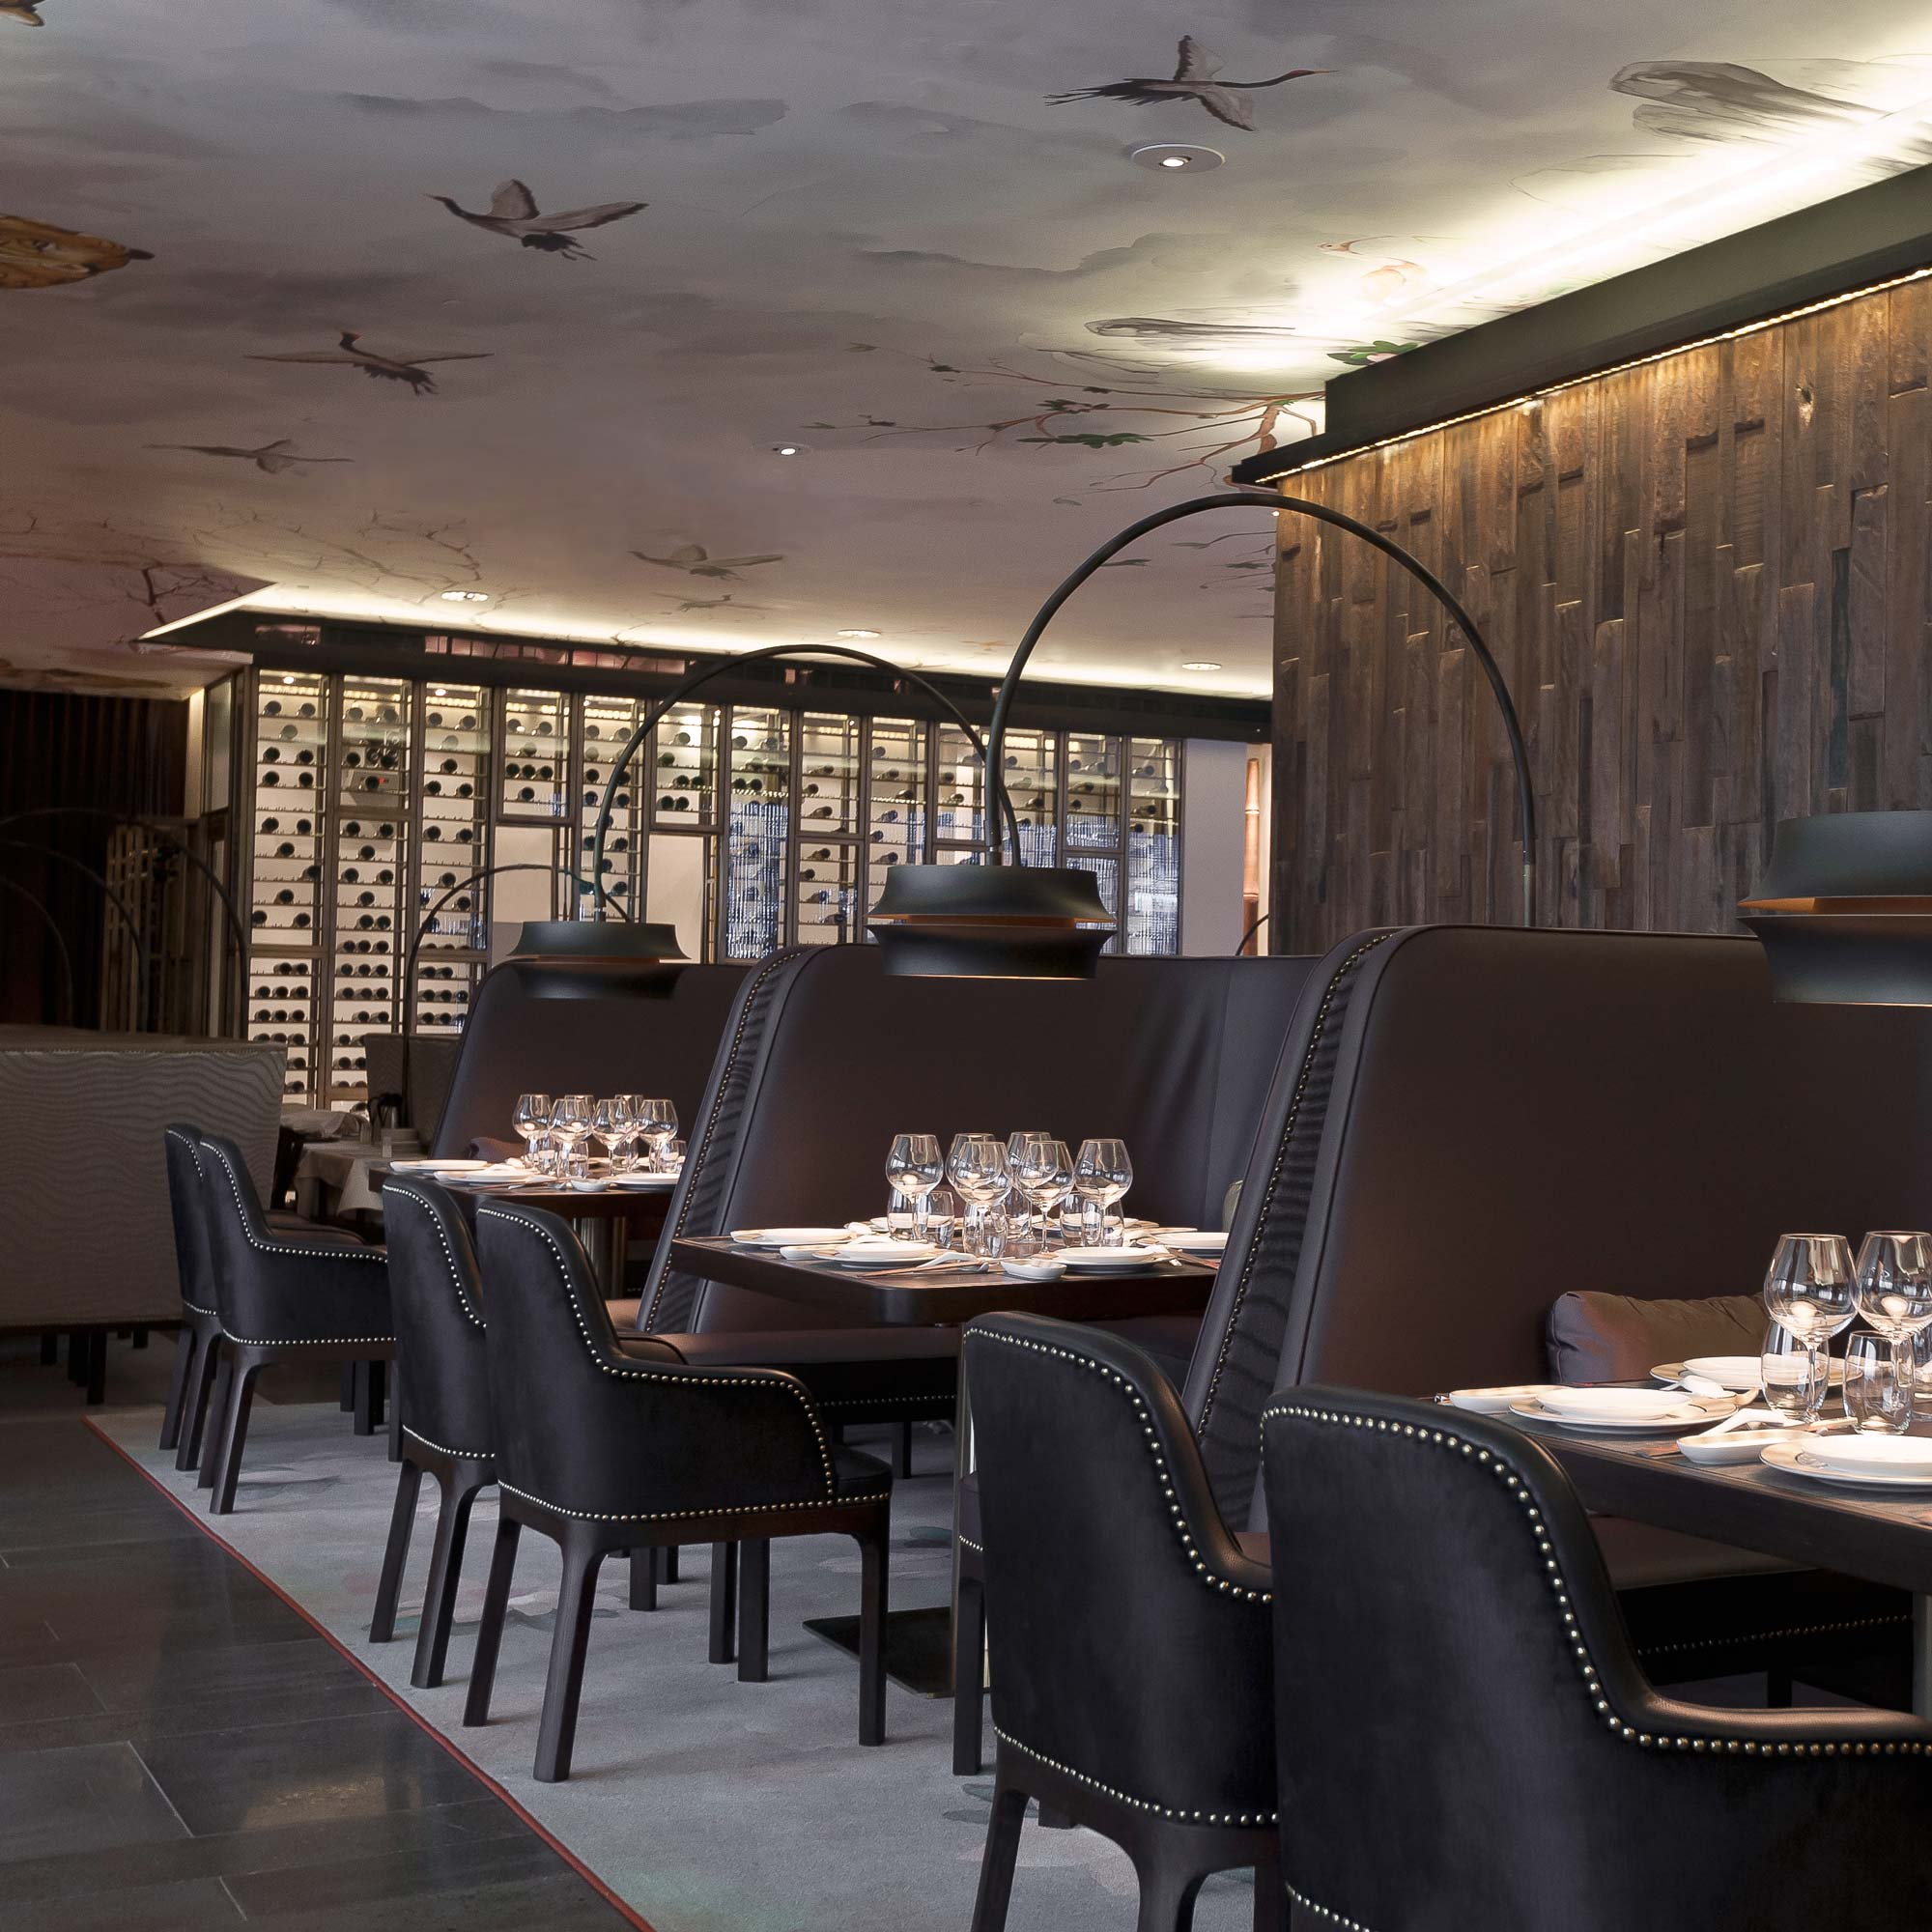 South Beauty restaurant with holistic spatial design including furniture and ceiling paintings